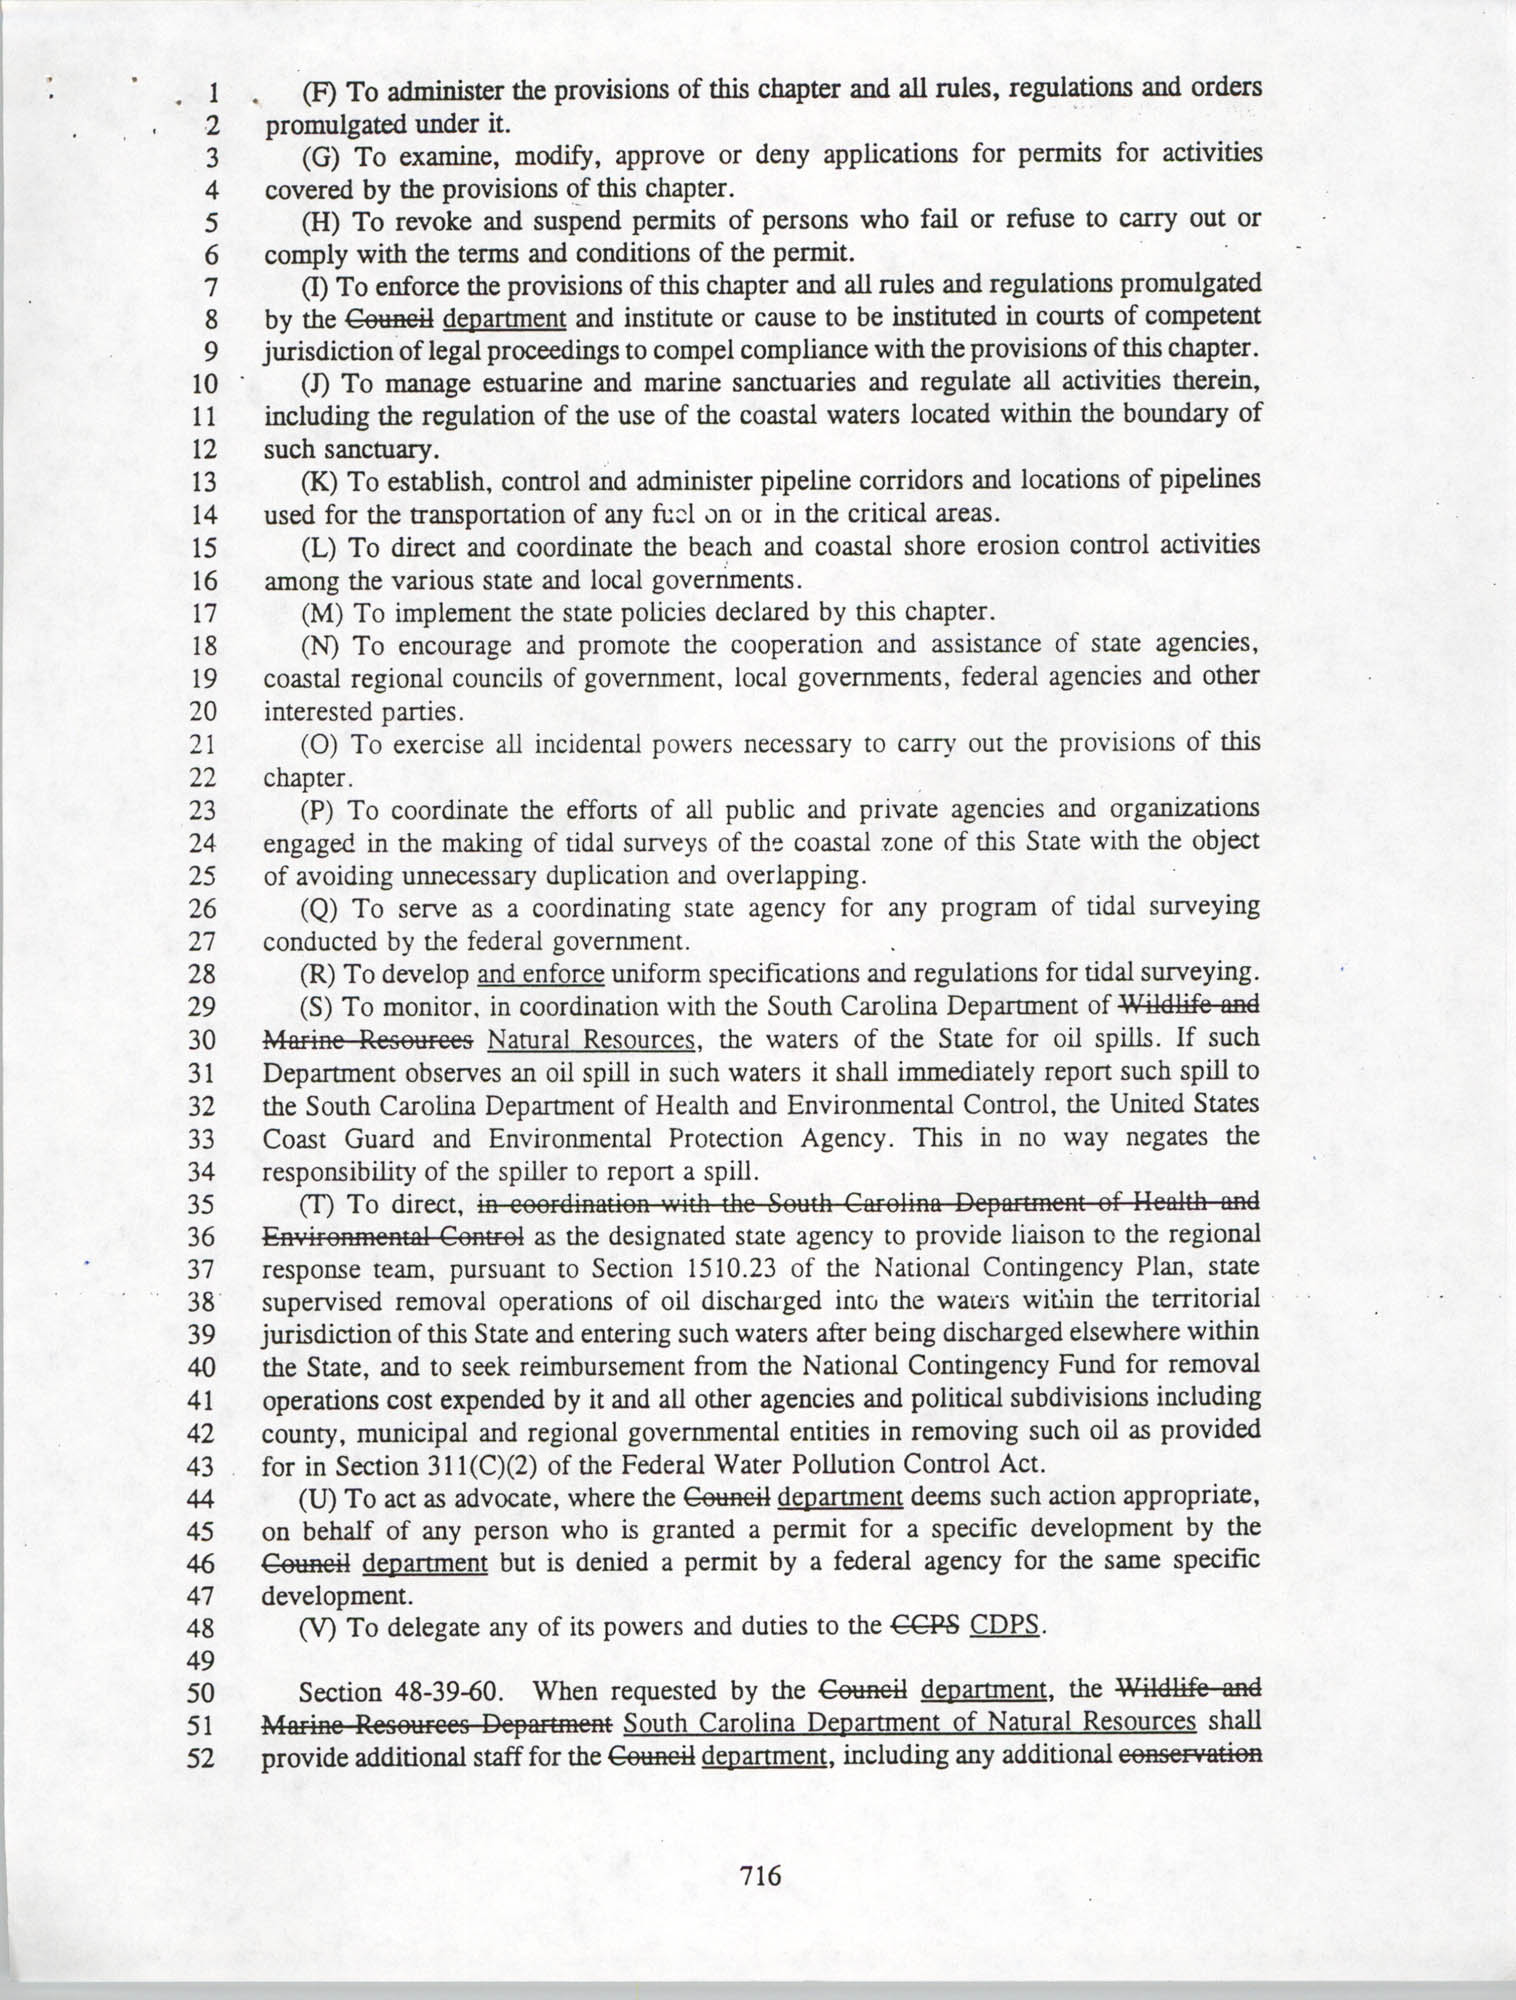 Restructuring Bill, Page 716